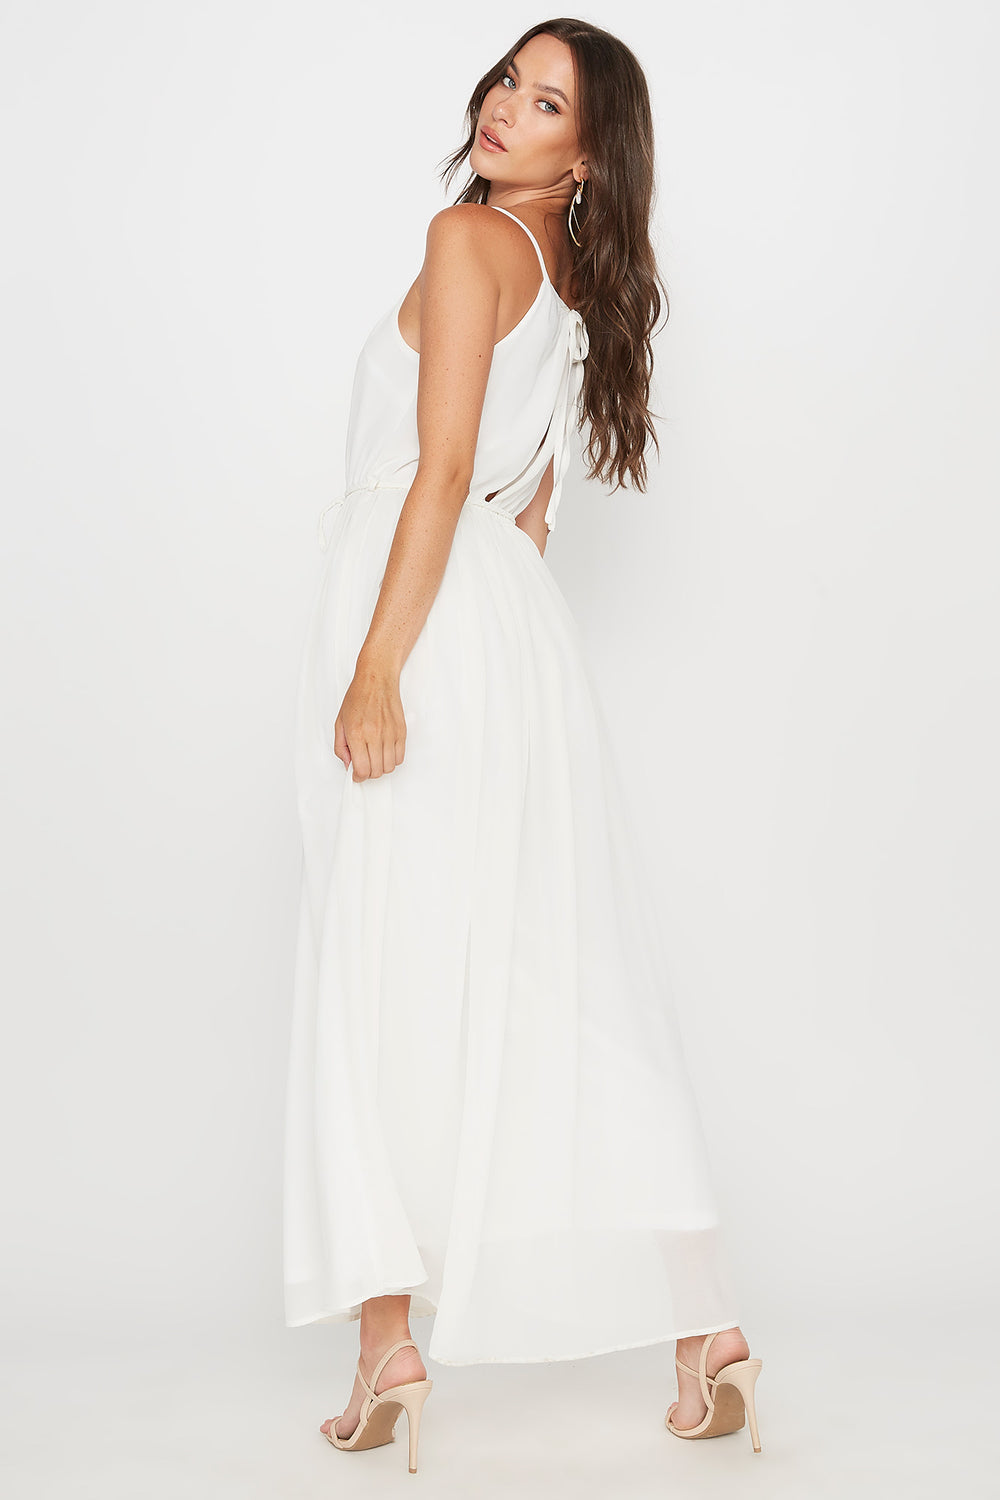 Scoop Neck Belted Maxi Dress White